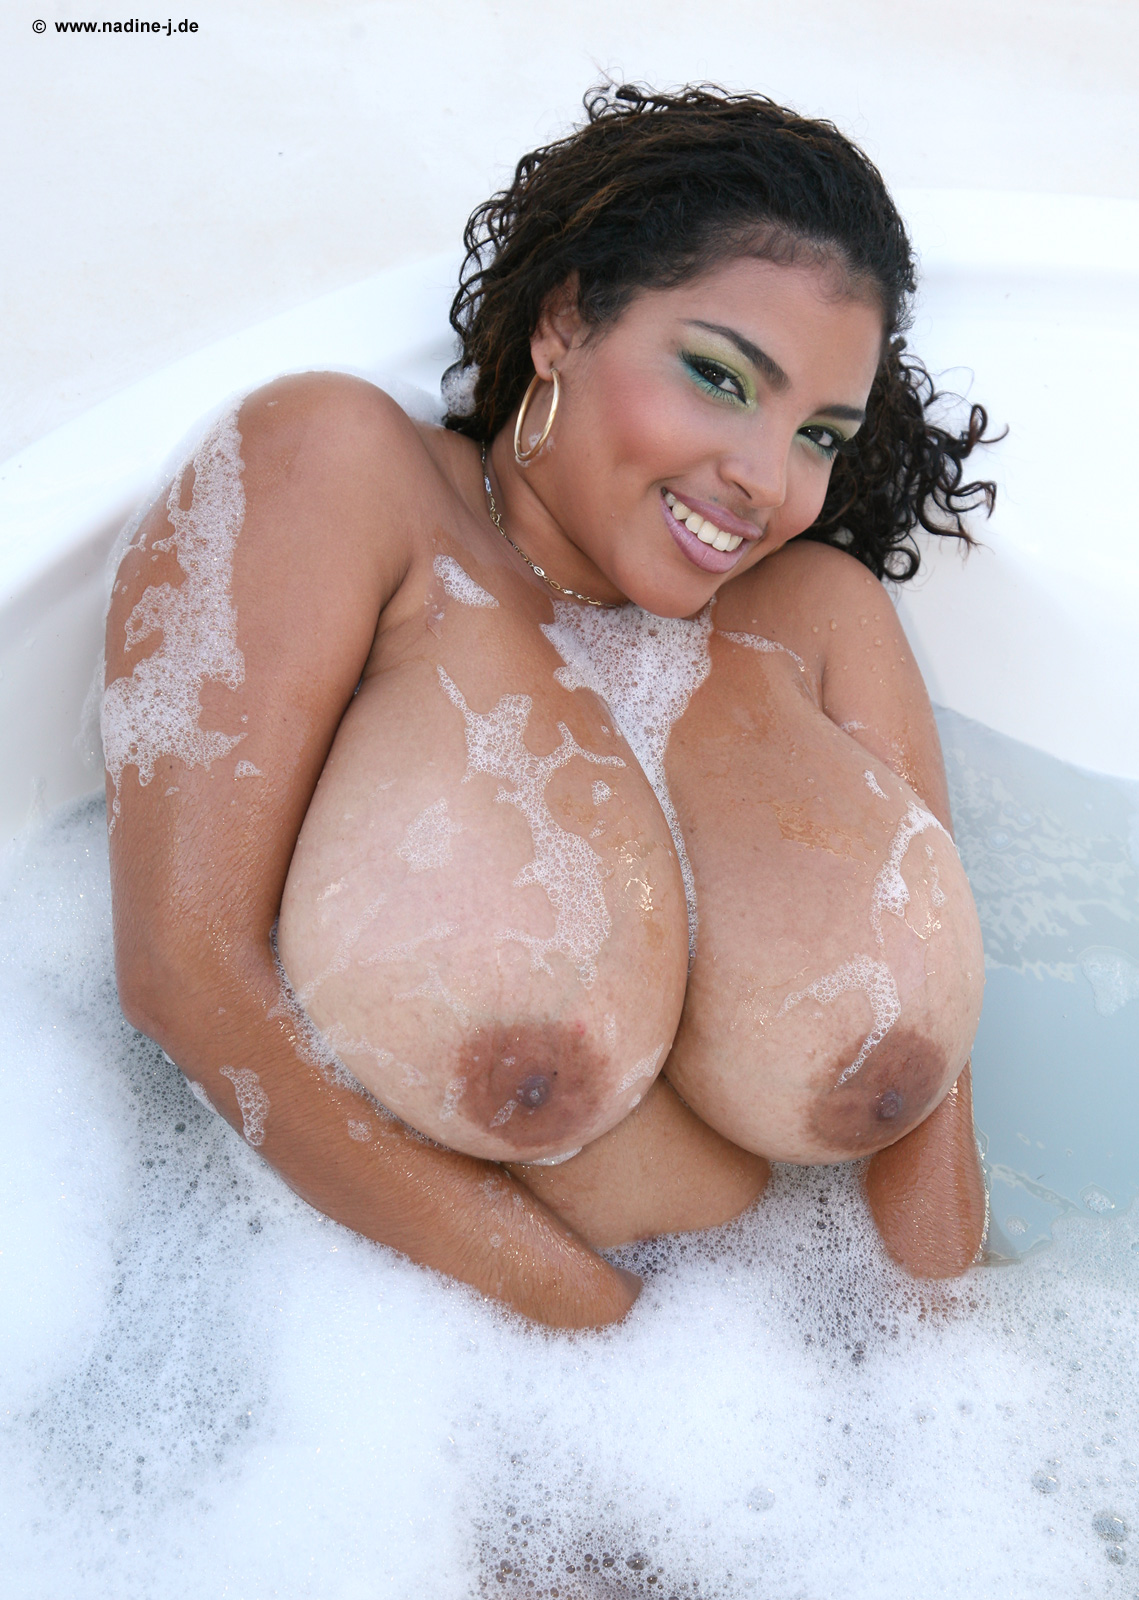 Naked Pictures Of Thick Dominican Girls